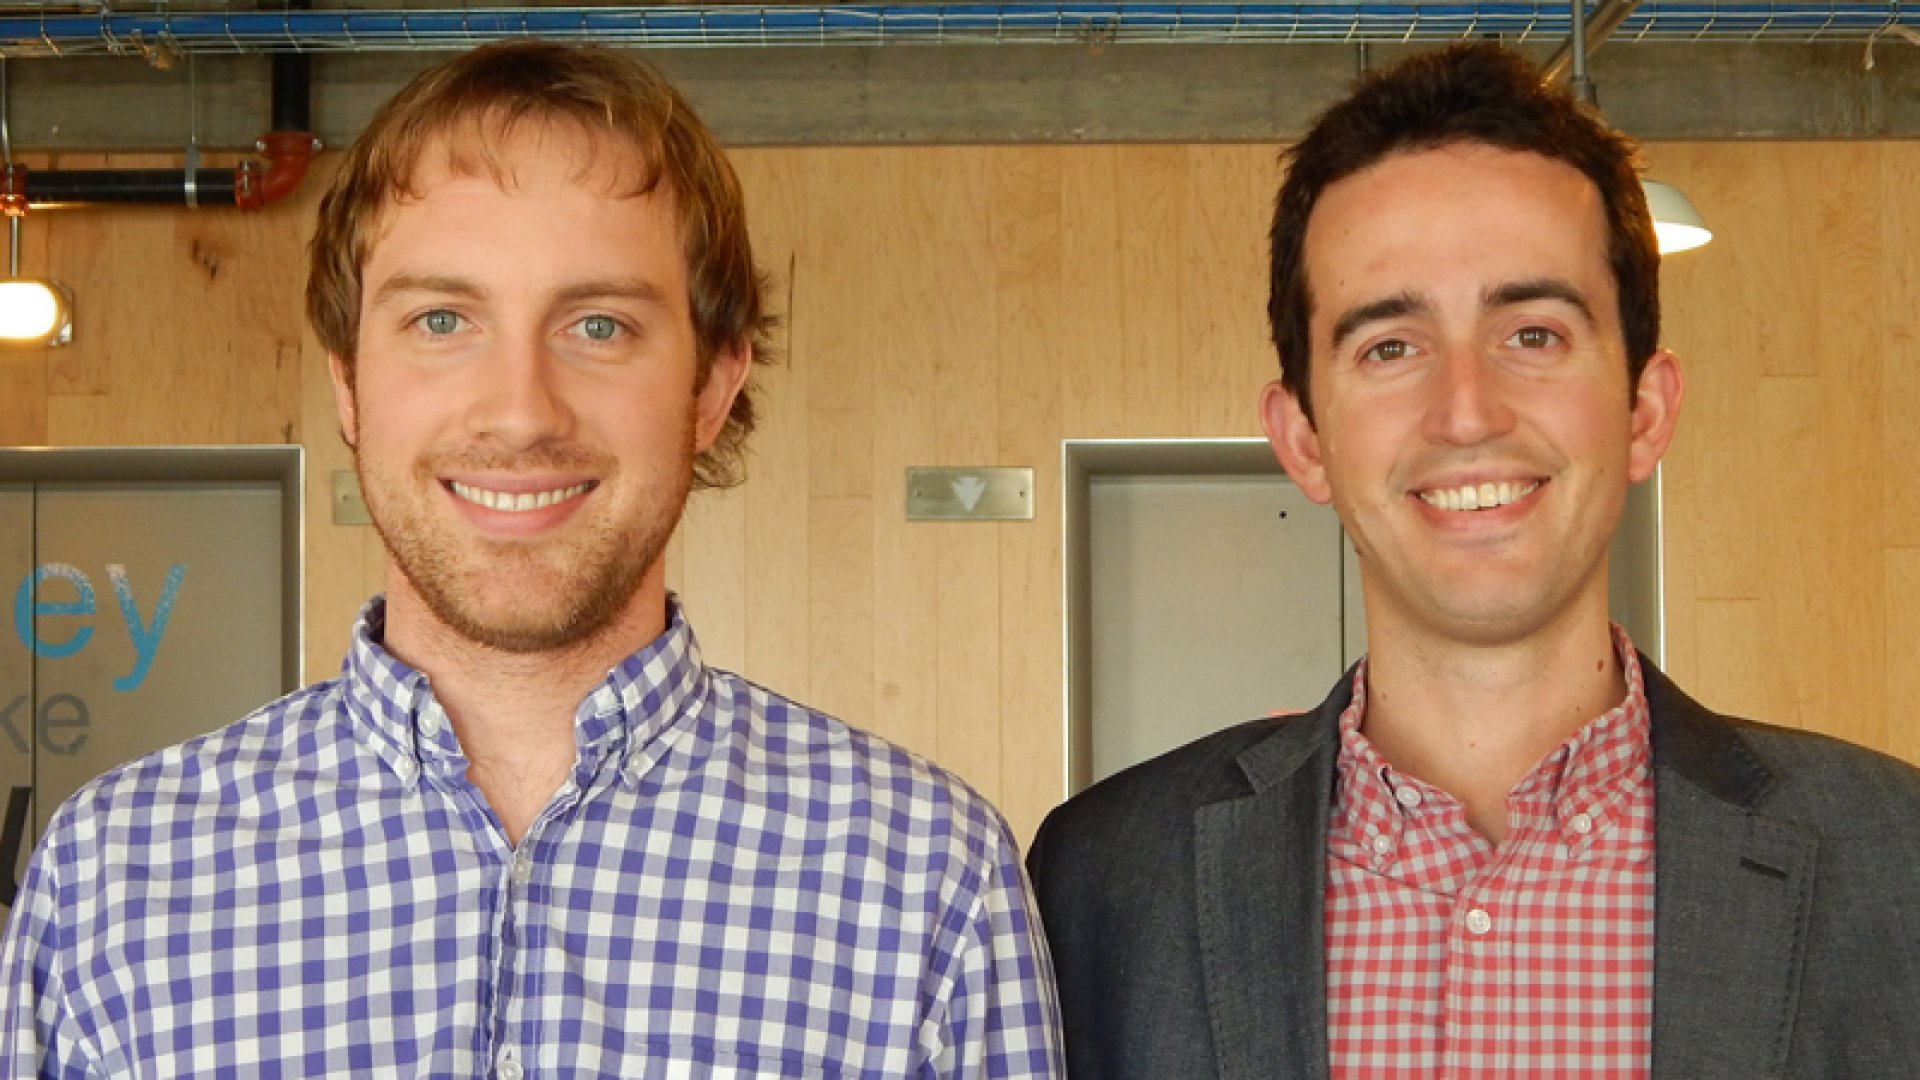 Operations optimizers: Matt Stuart (left) and Andrew Allison are building Main Street Hub with design principles typically applied to products and services.